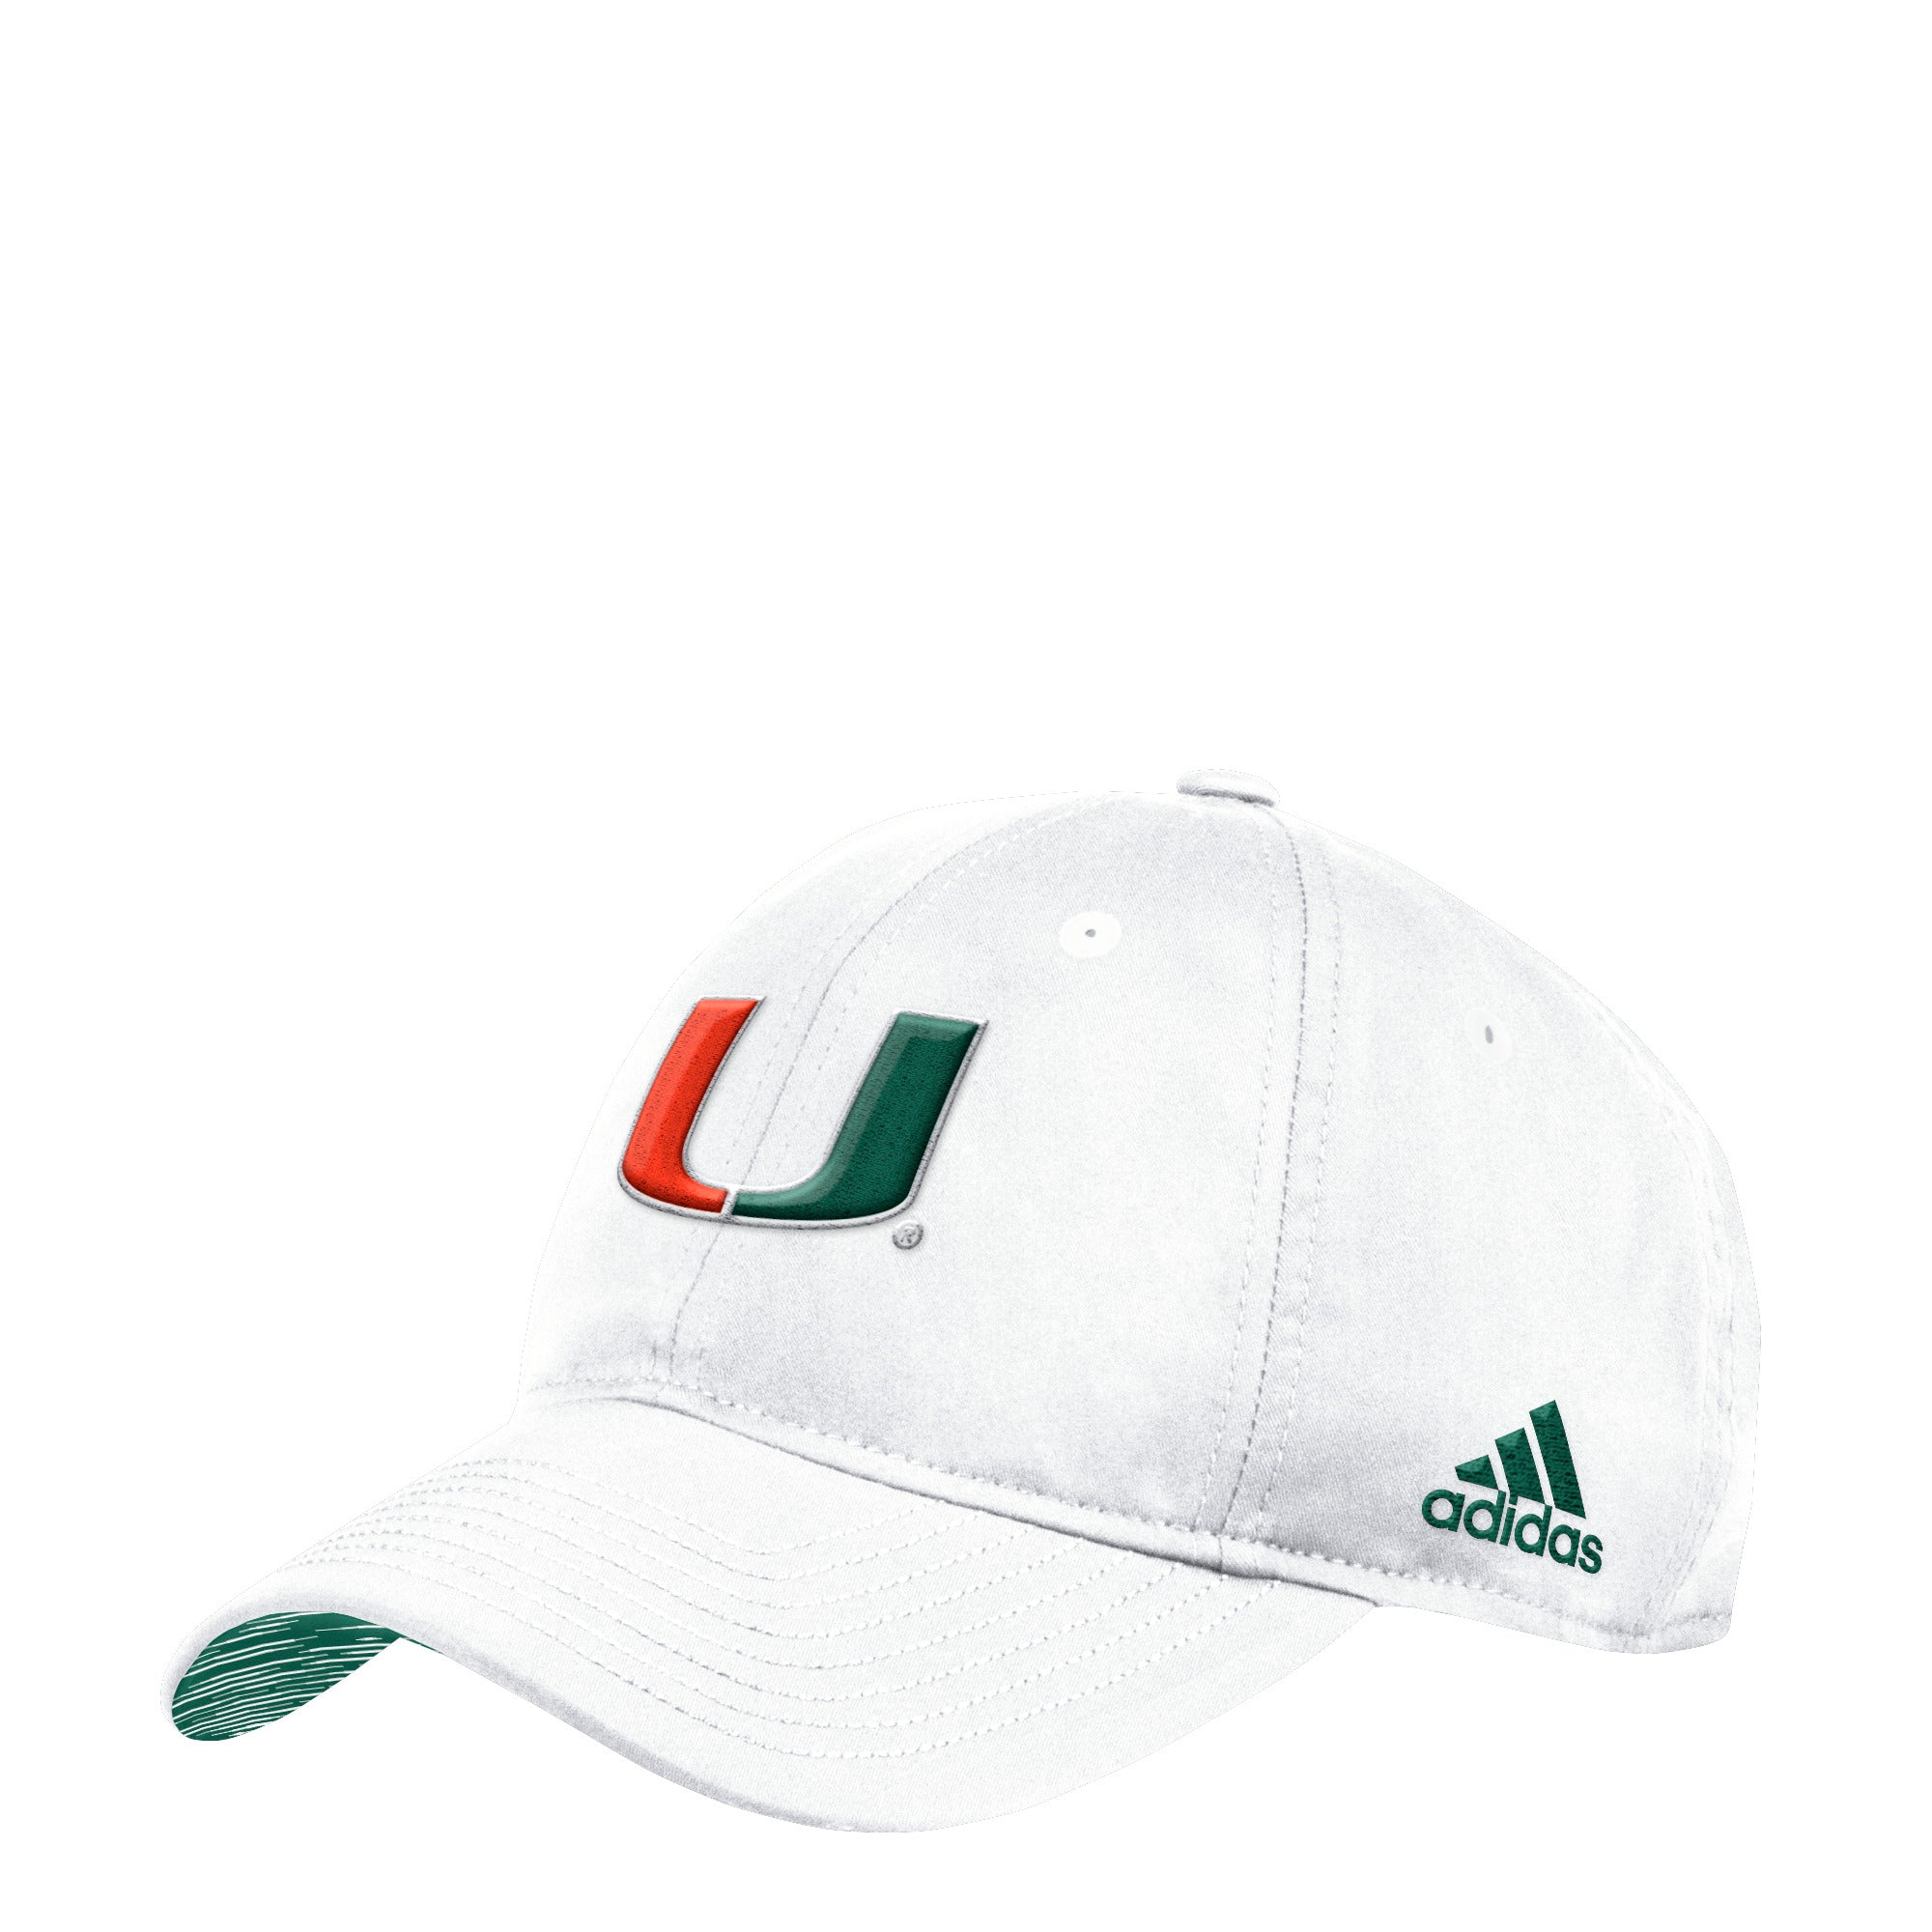 online store 004f1 5605d Miami Hurricanes adidas 2018 Coaches U Adjustable Slouch Hat - White –  CanesWear at Miami FanWear